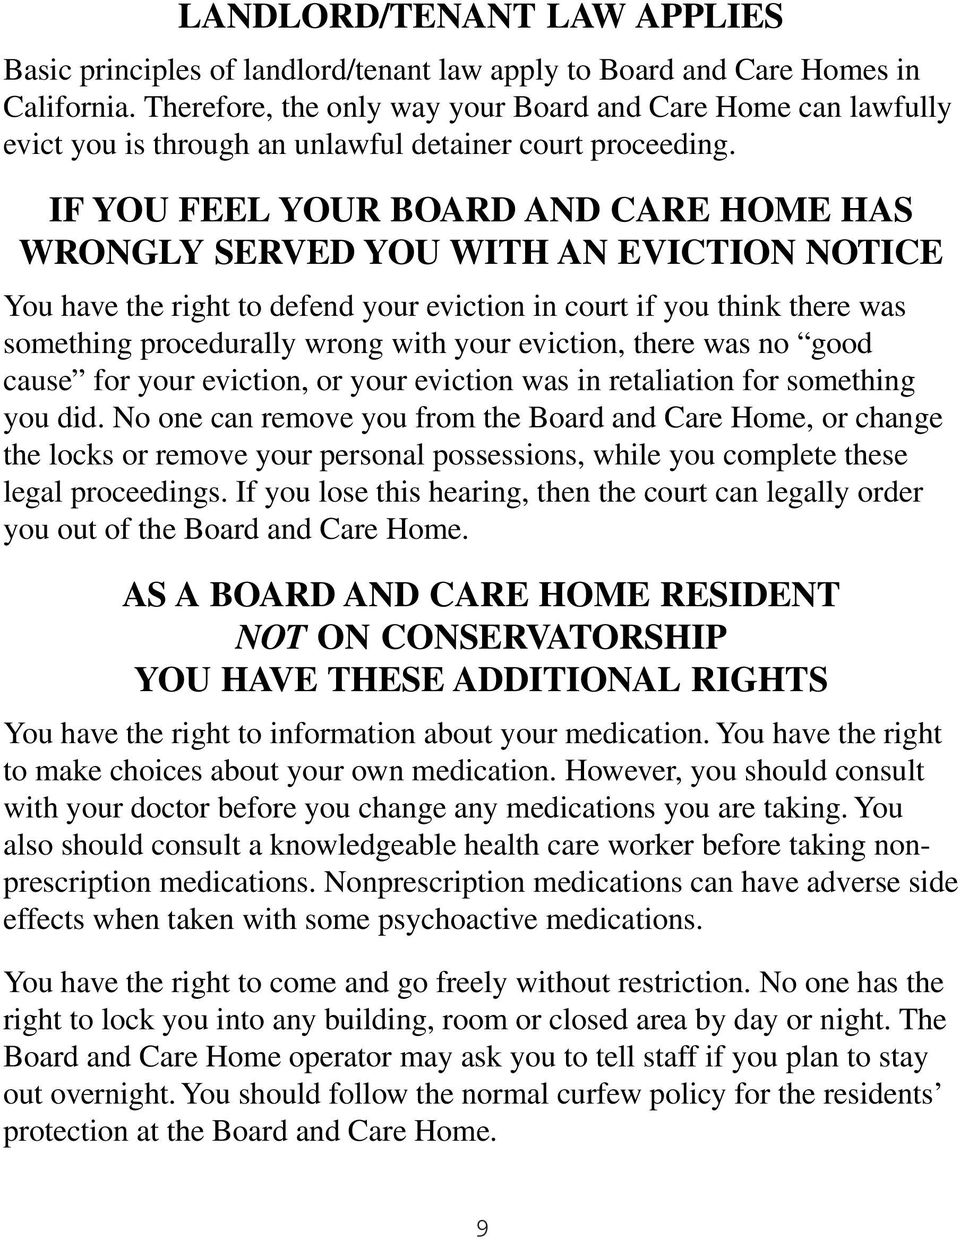 IF YOU FEEL YOUR BOARD AND CARE HOME HAS WRONGLY SERVED YOU WITH AN EVICTION NOTICE You have the right to defend your eviction in court if you think there was something procedurally wrong with your